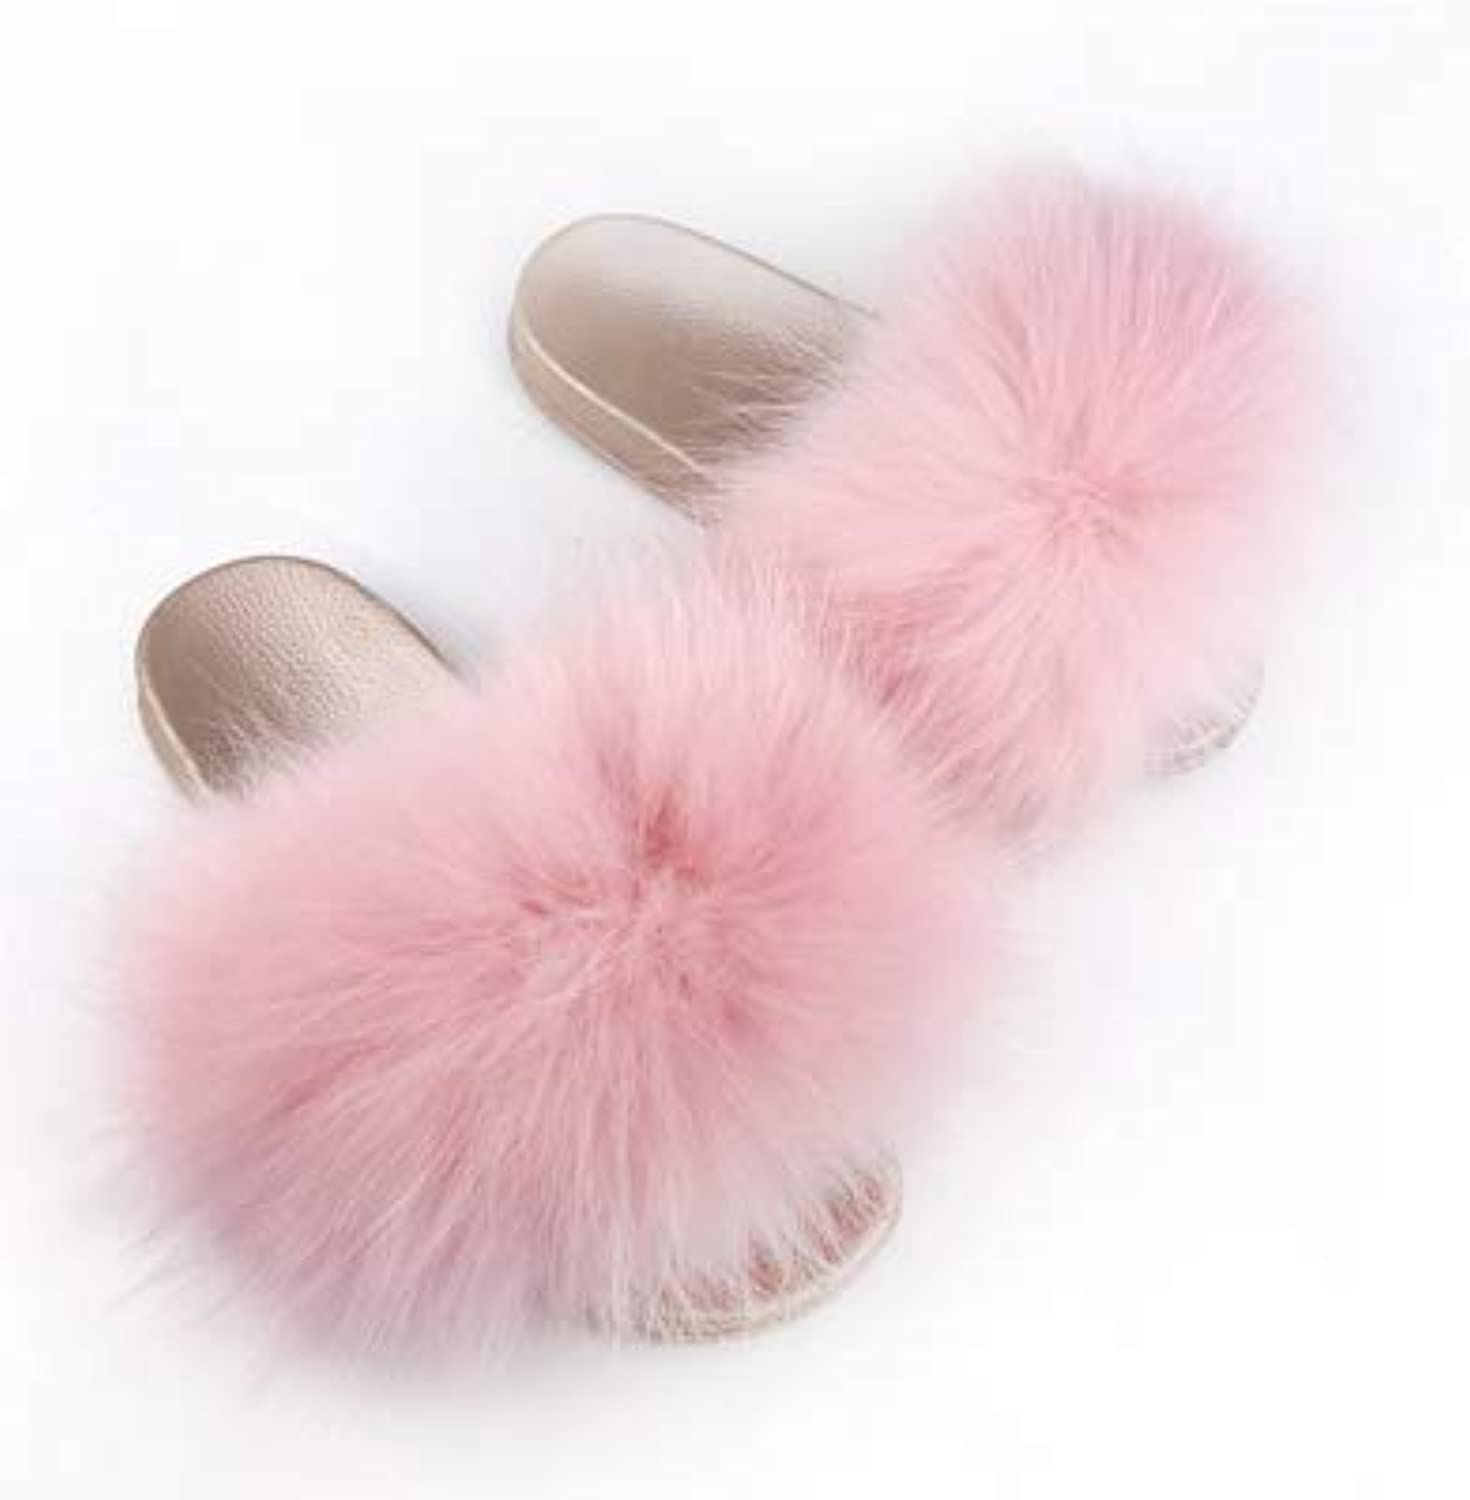 Winter Autumn Open Toe Real Raccoon Fur Slides Beach shoes Women's Furry Flip Flops Home Slippers color6 8.5